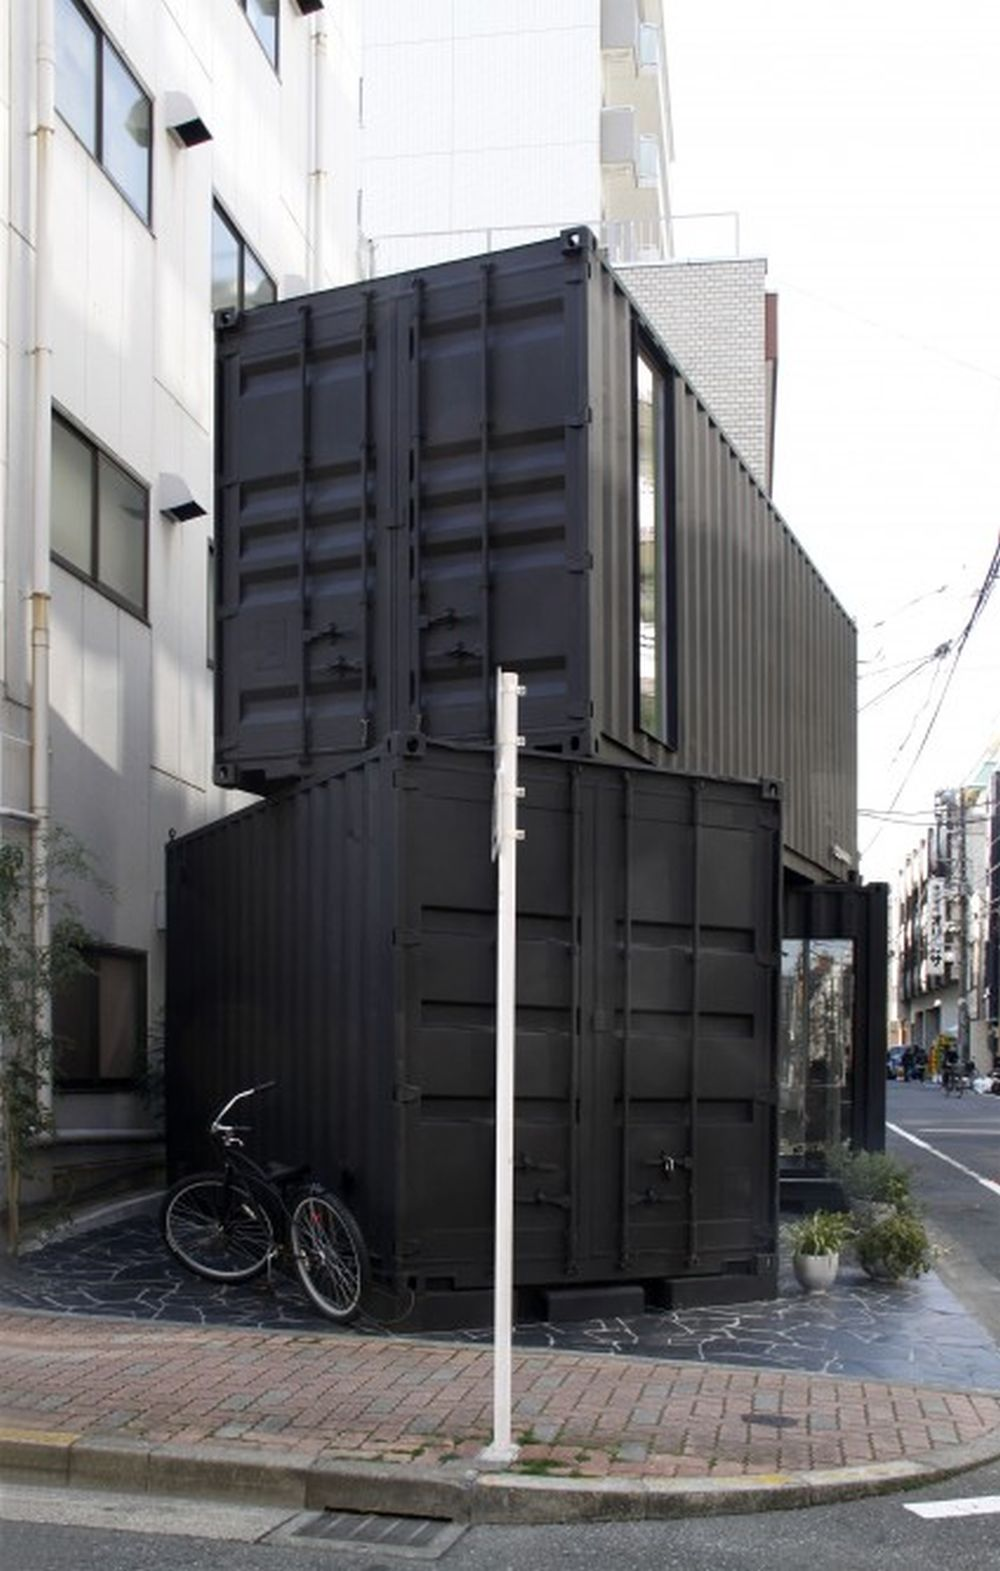 Cc4441 39 s stacked shipping containers house a modern office for Architecture office